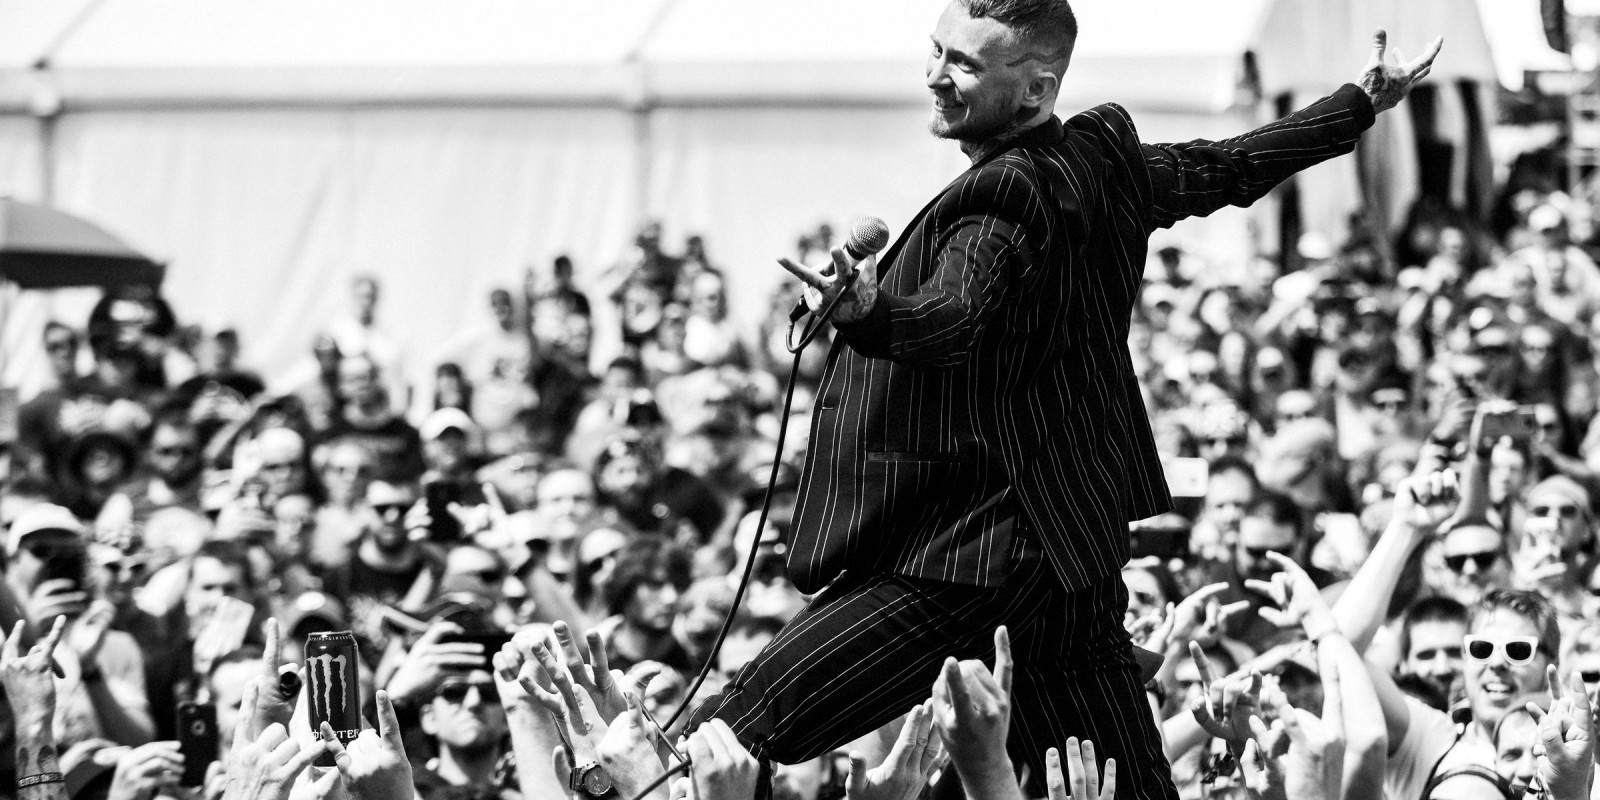 Frank Carter and the Rattlesnakes Rock On The Range Festival 2017 edits